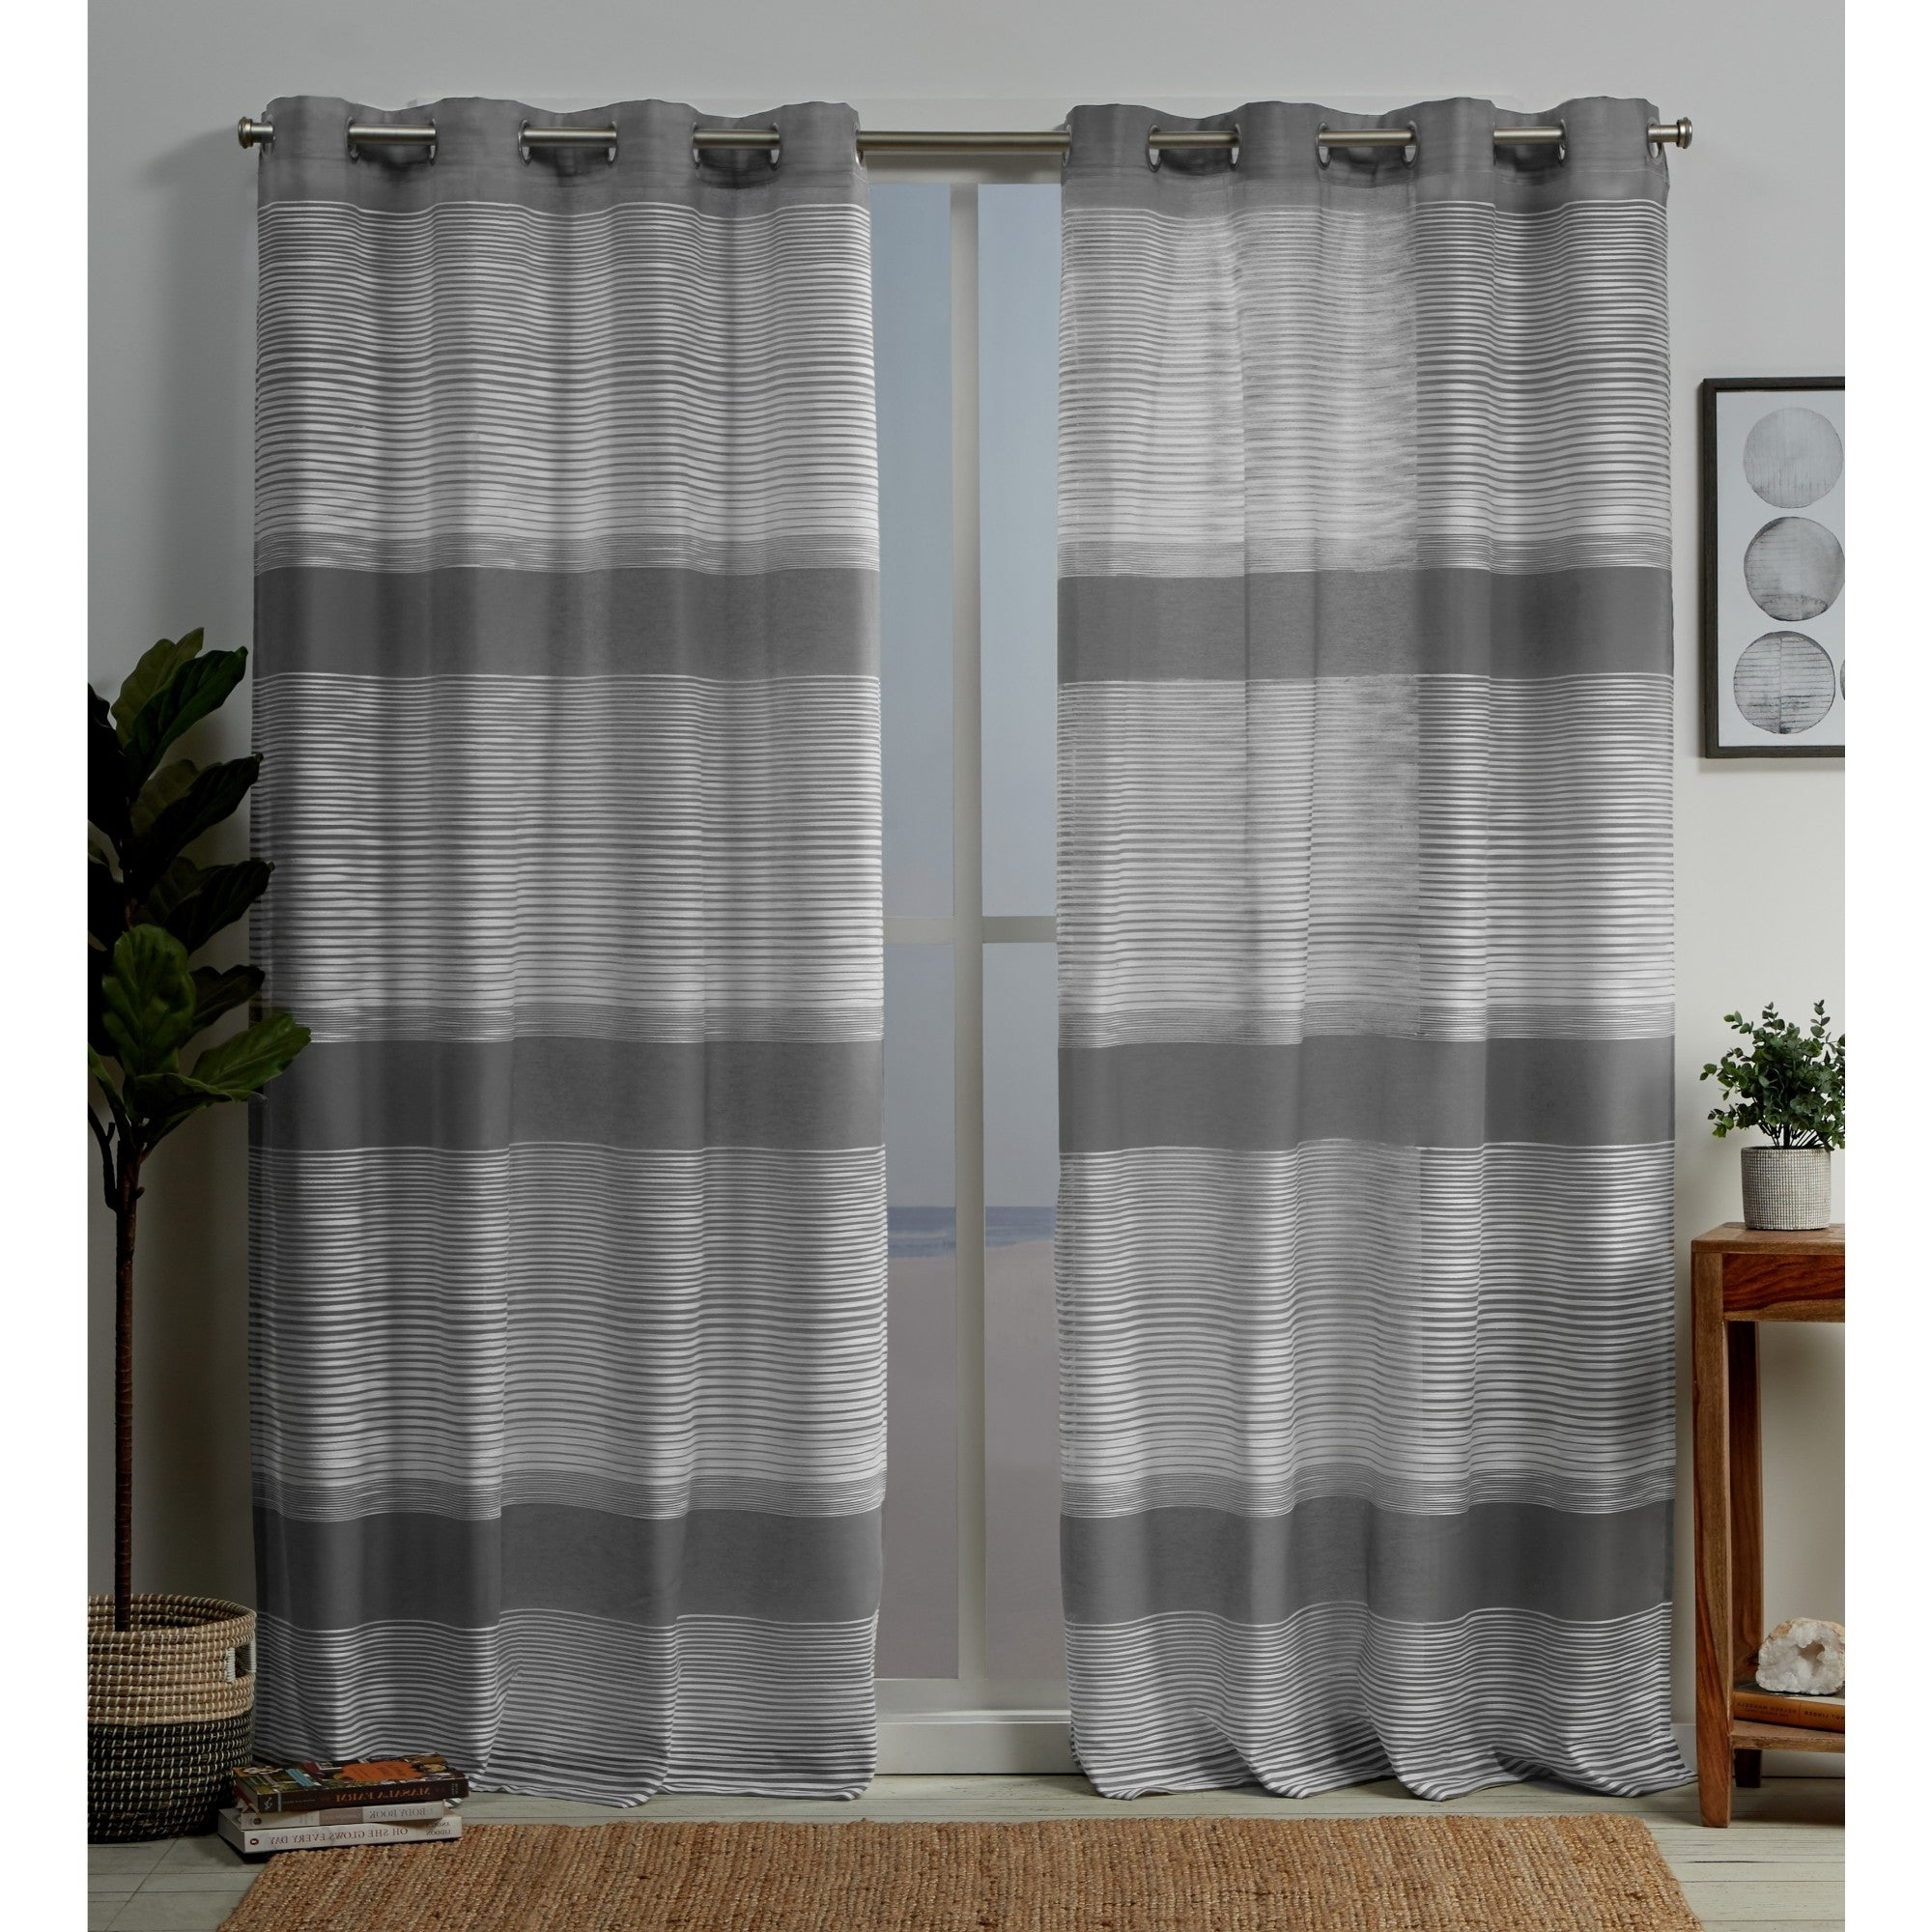 Best And Newest Ombre Stripe Yarn Dyed Cotton Window Curtain Panel Pairs Intended For Copper Grove Panagyurishte Striped Grommet Top Curtain Panel Pair (View 4 of 20)